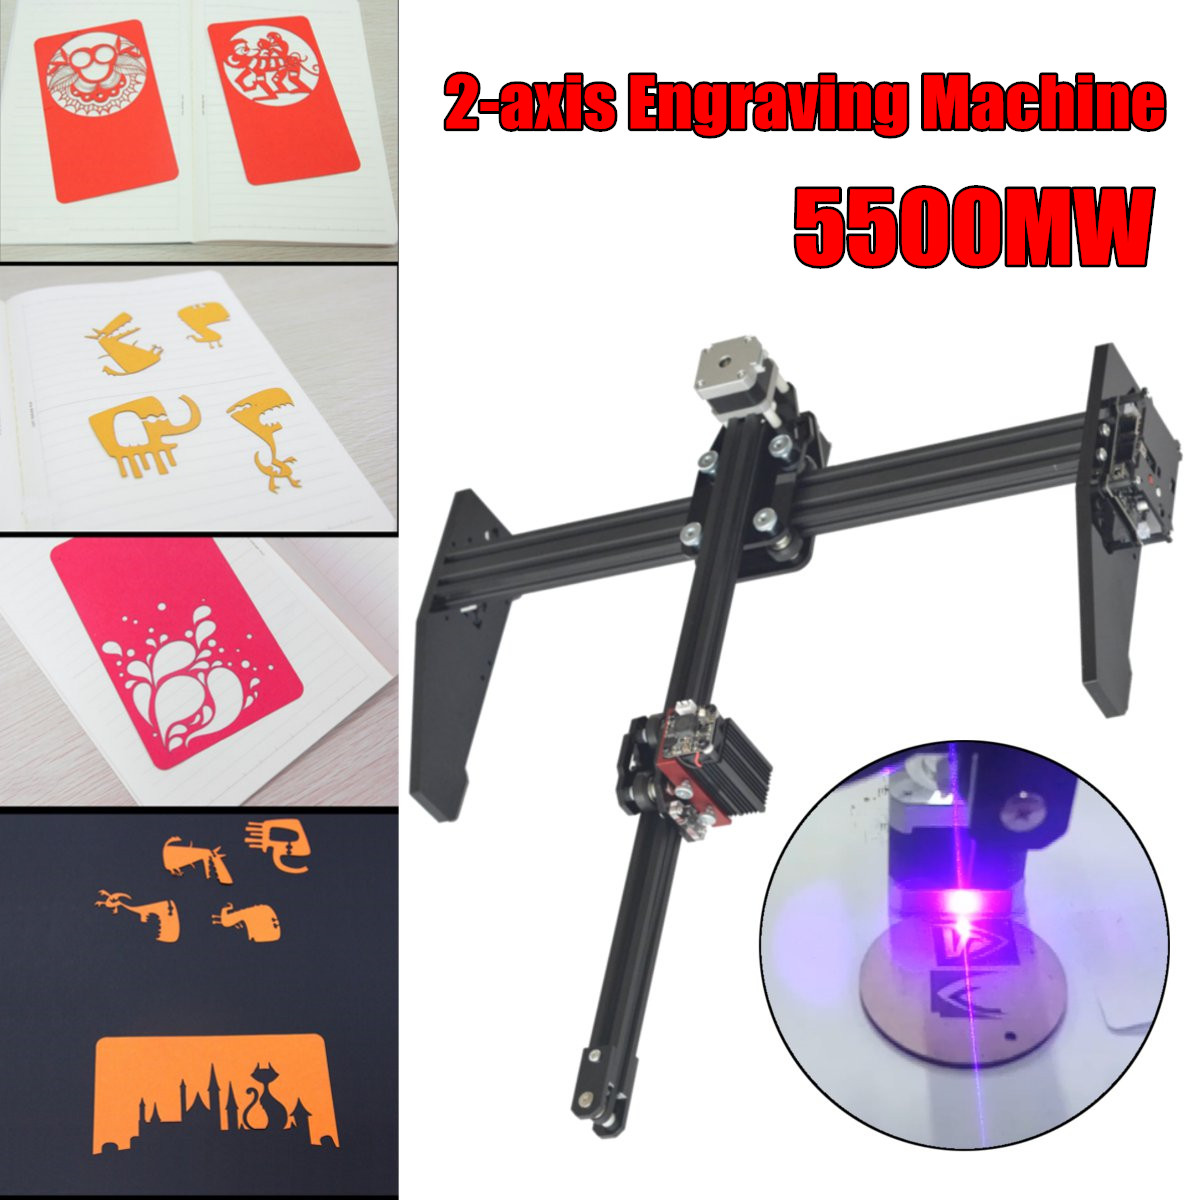 New Style 5500MW 2 Axis Laser Engraving Machine Cutting Engraver CNC Logo Printer Machine DIY Laser Engraver Machine nubwo n2u pc gamer headset usb stereo gaming headphones with microphone mic led light best over ear casque computer game headset